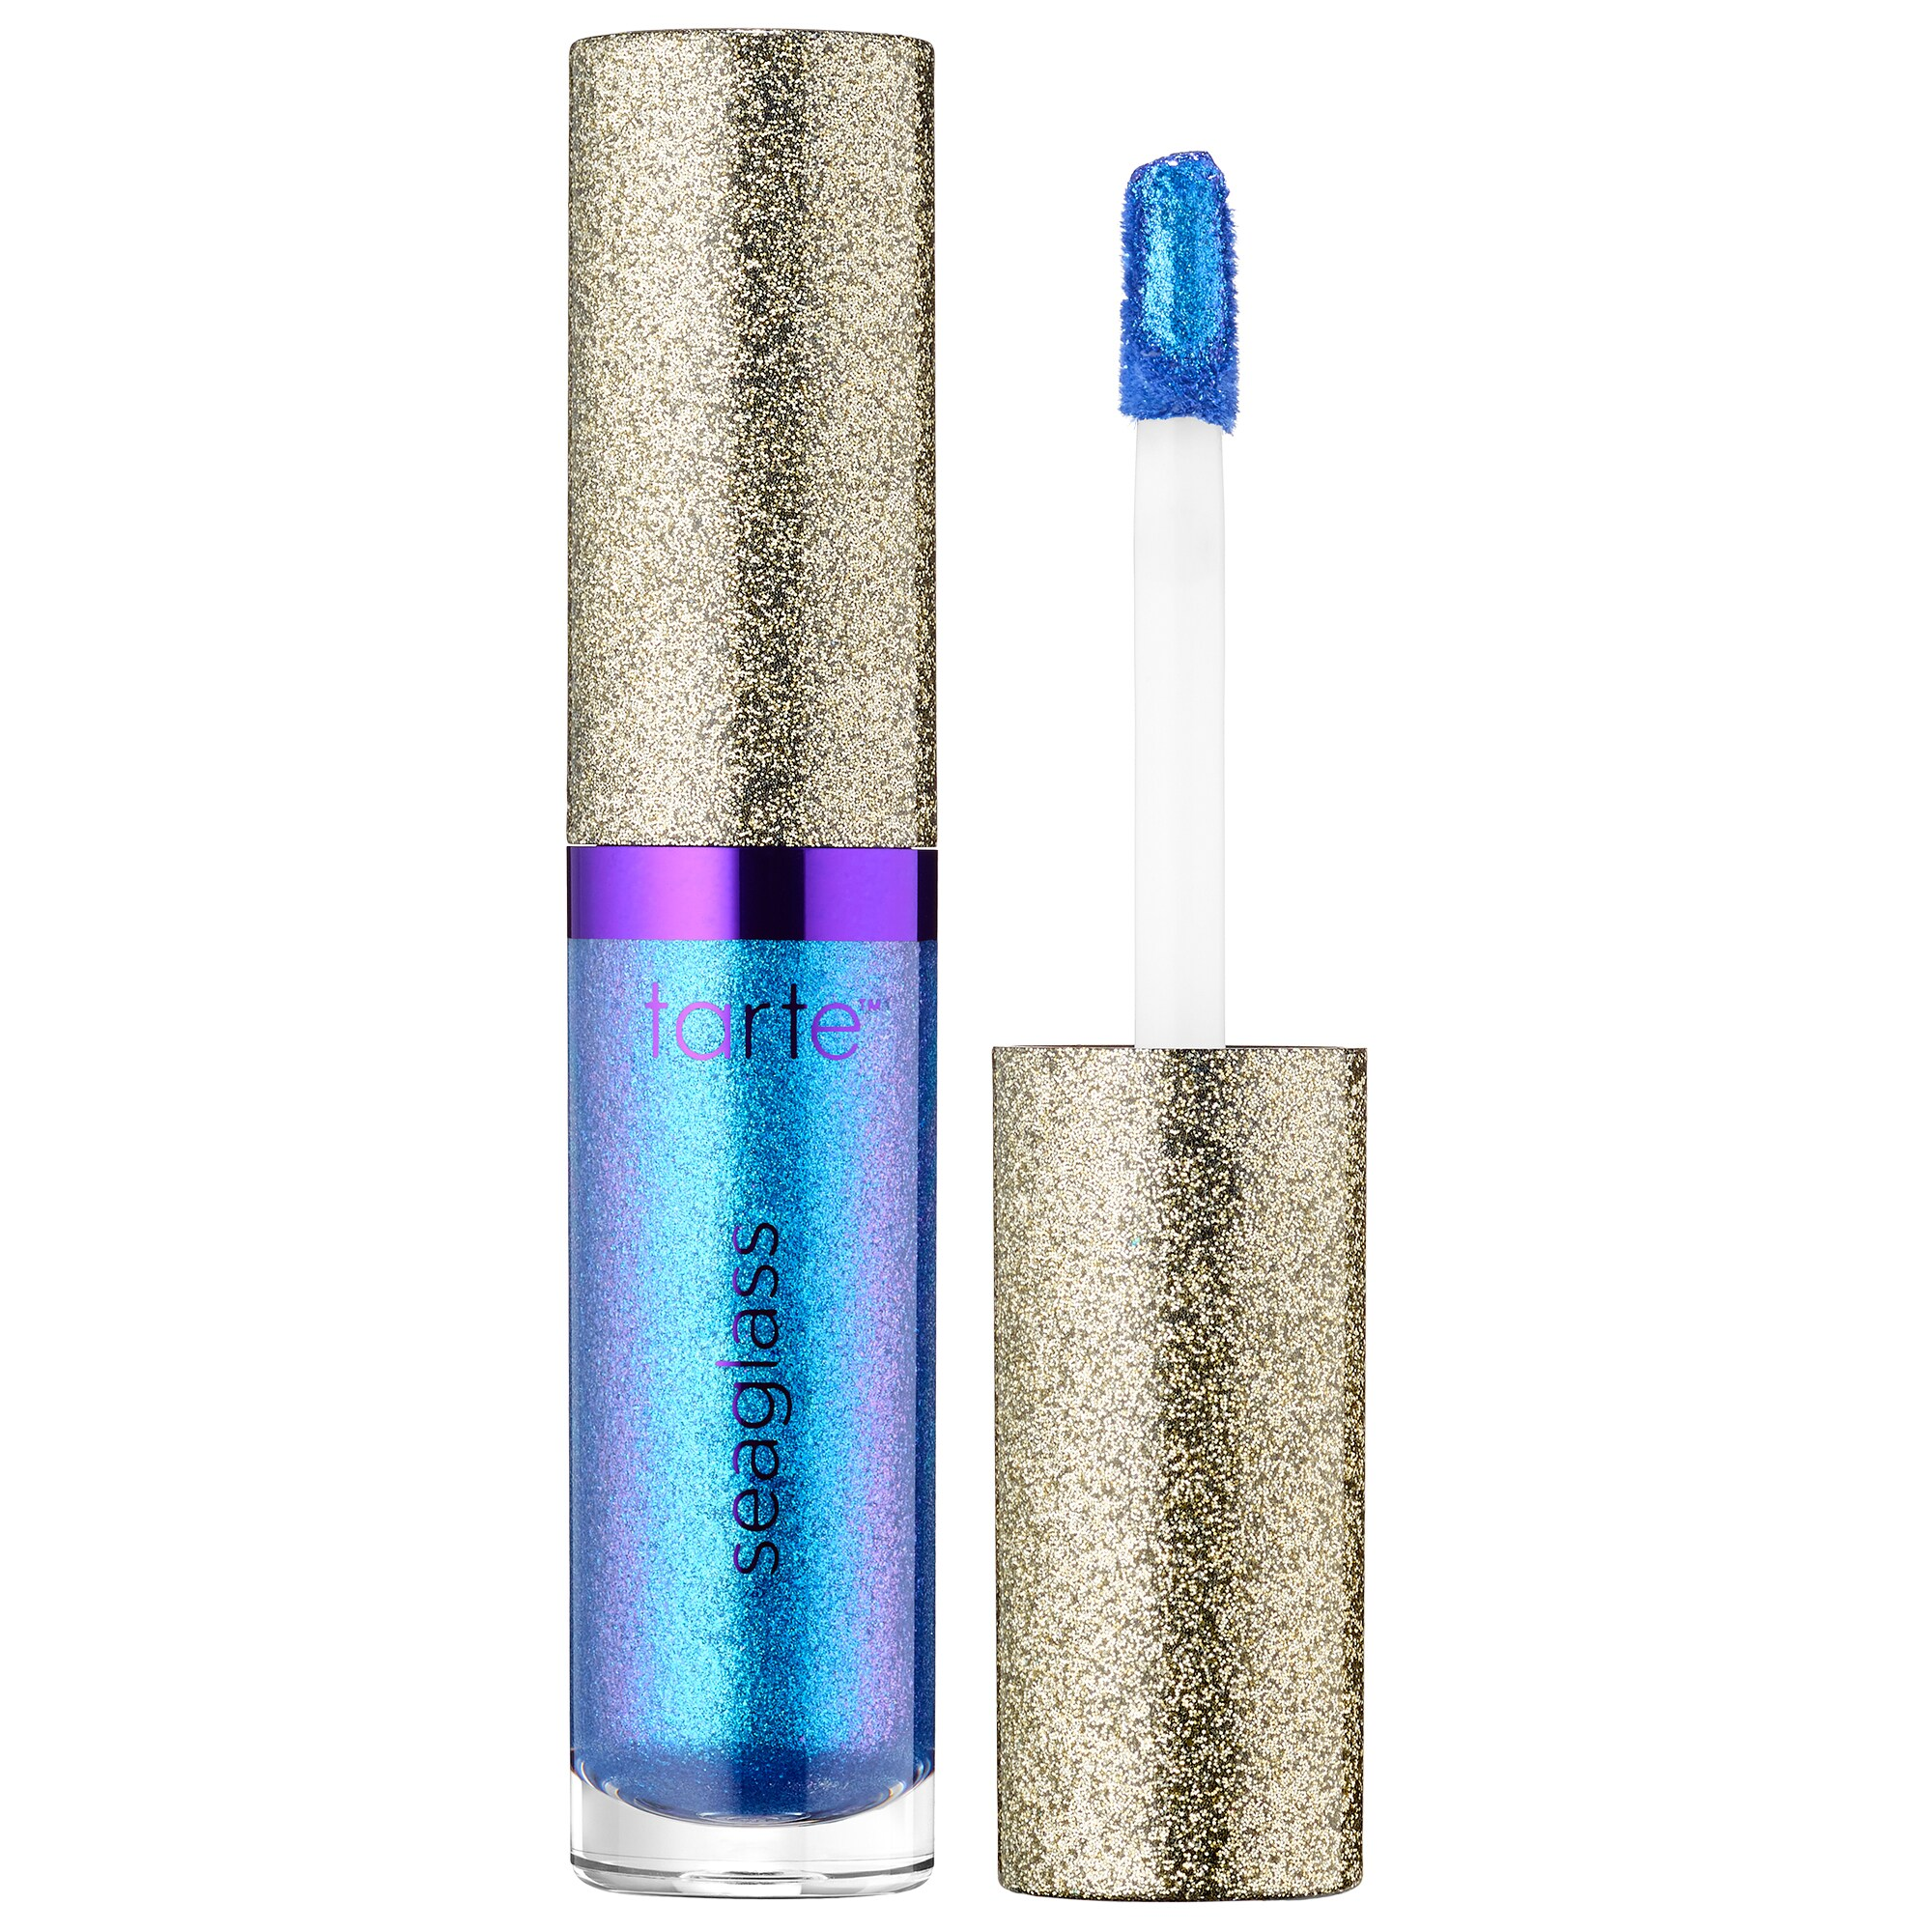 Tarte - Seaglass Liquid Eyeshadow, Rainforest of the Sea™ Collection